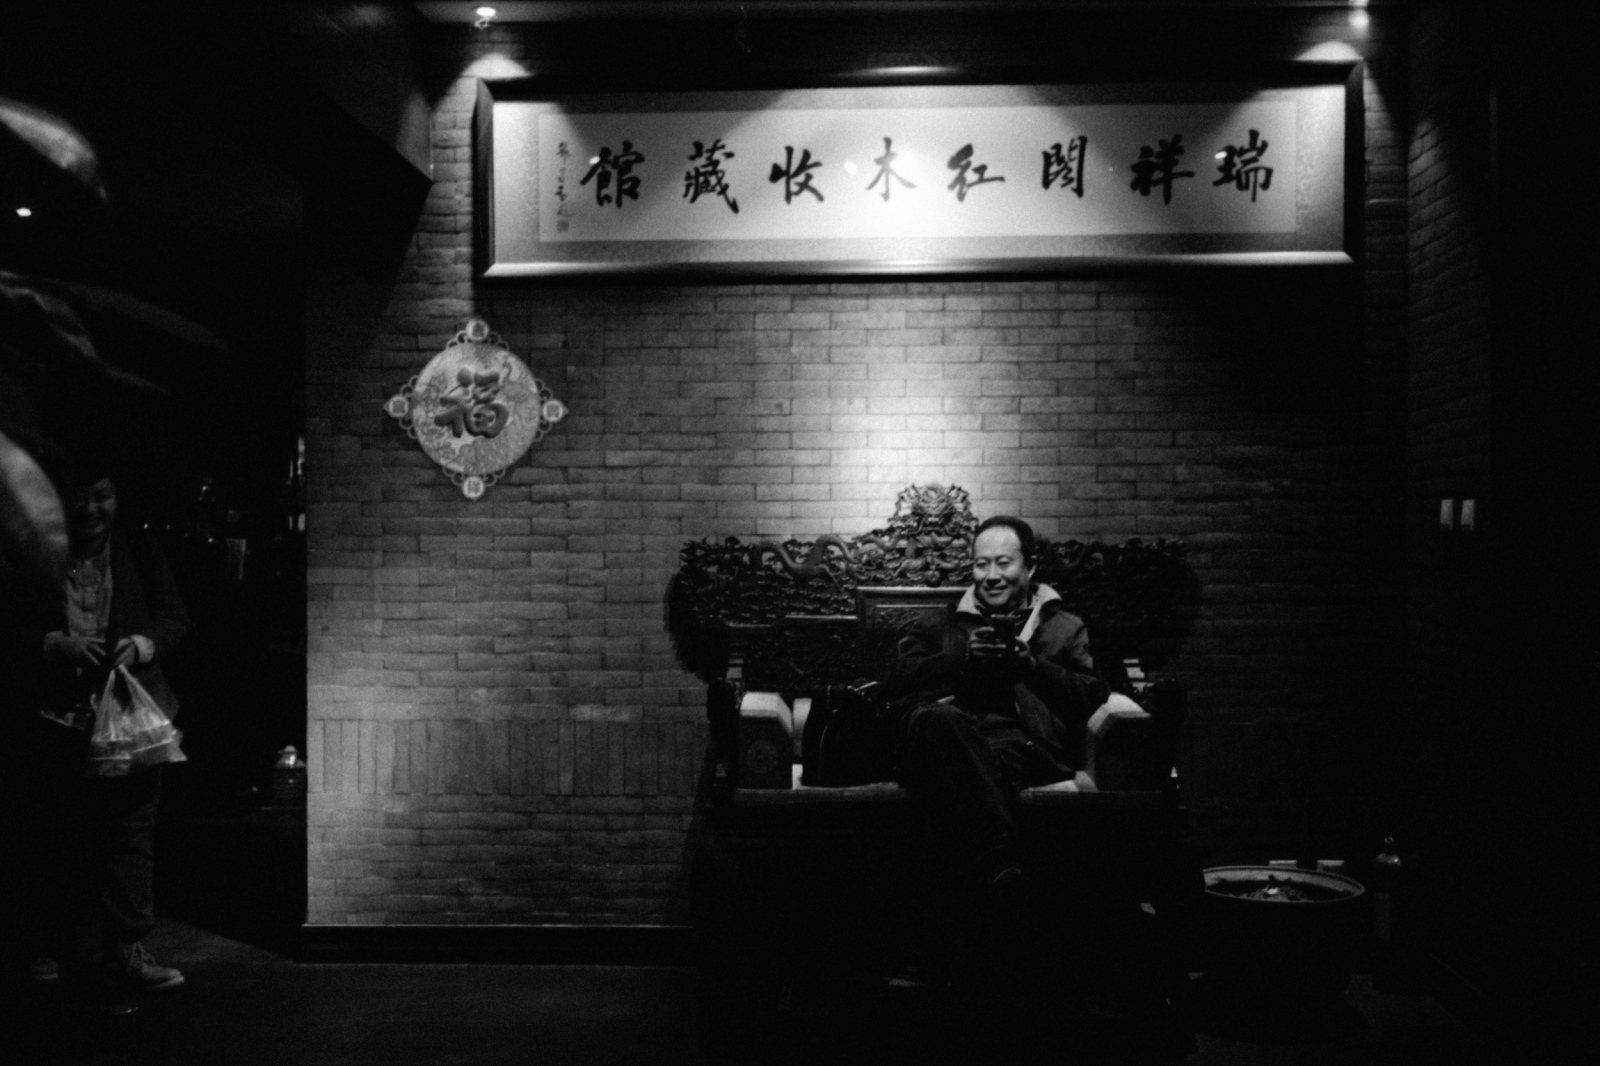 A man relaxing after his dinner at a luxurious Chinese restaurant. Beijing, China. 2015